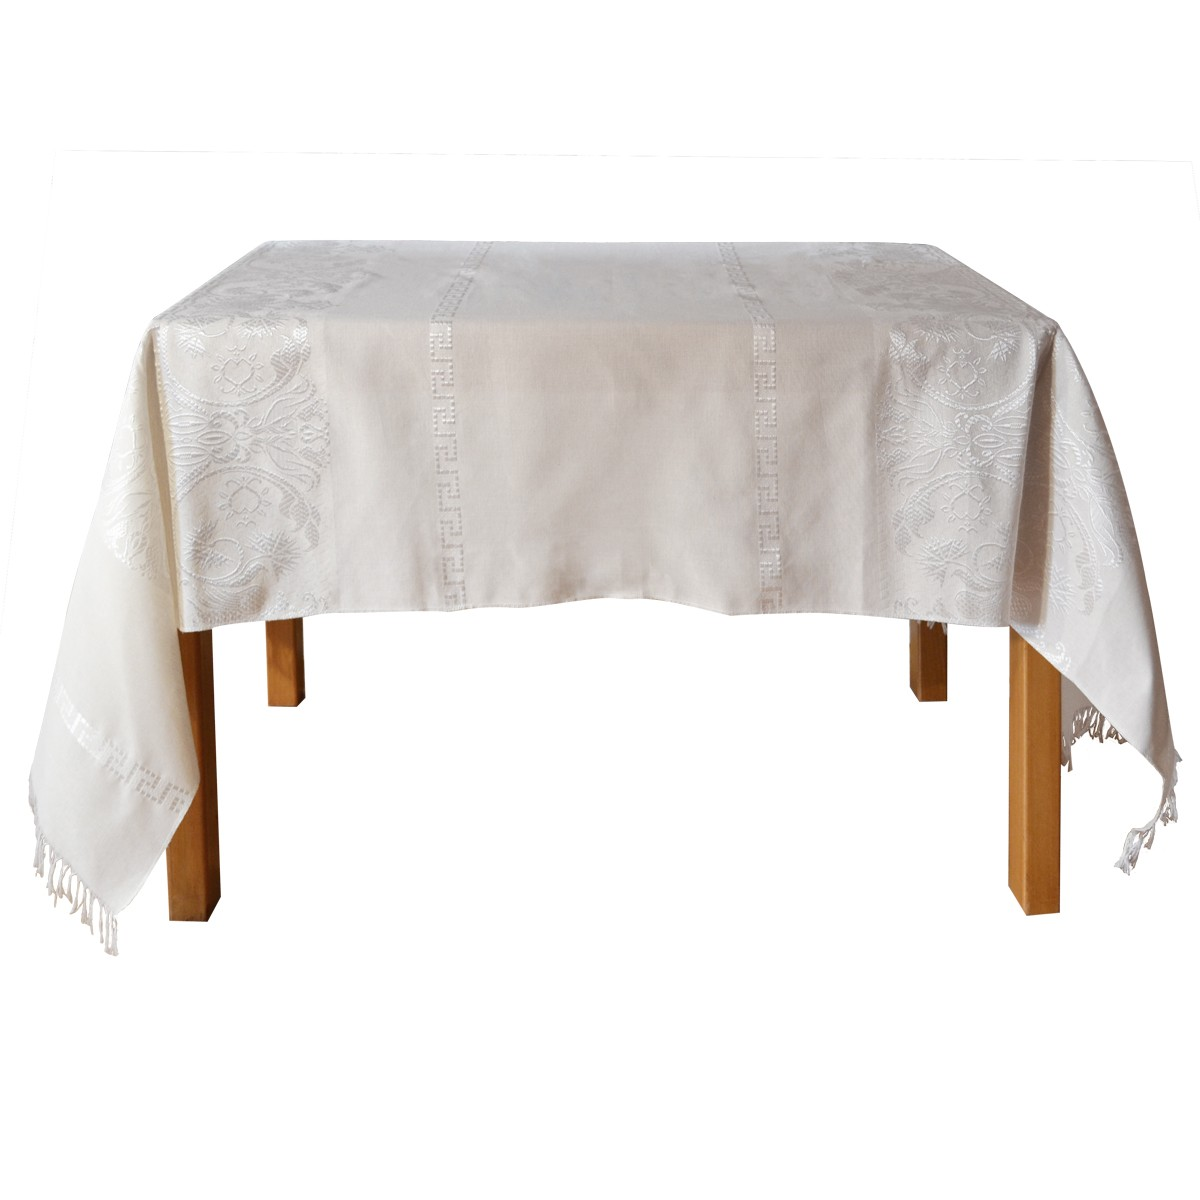 Eagle Jacquard Tablecloth, Off White